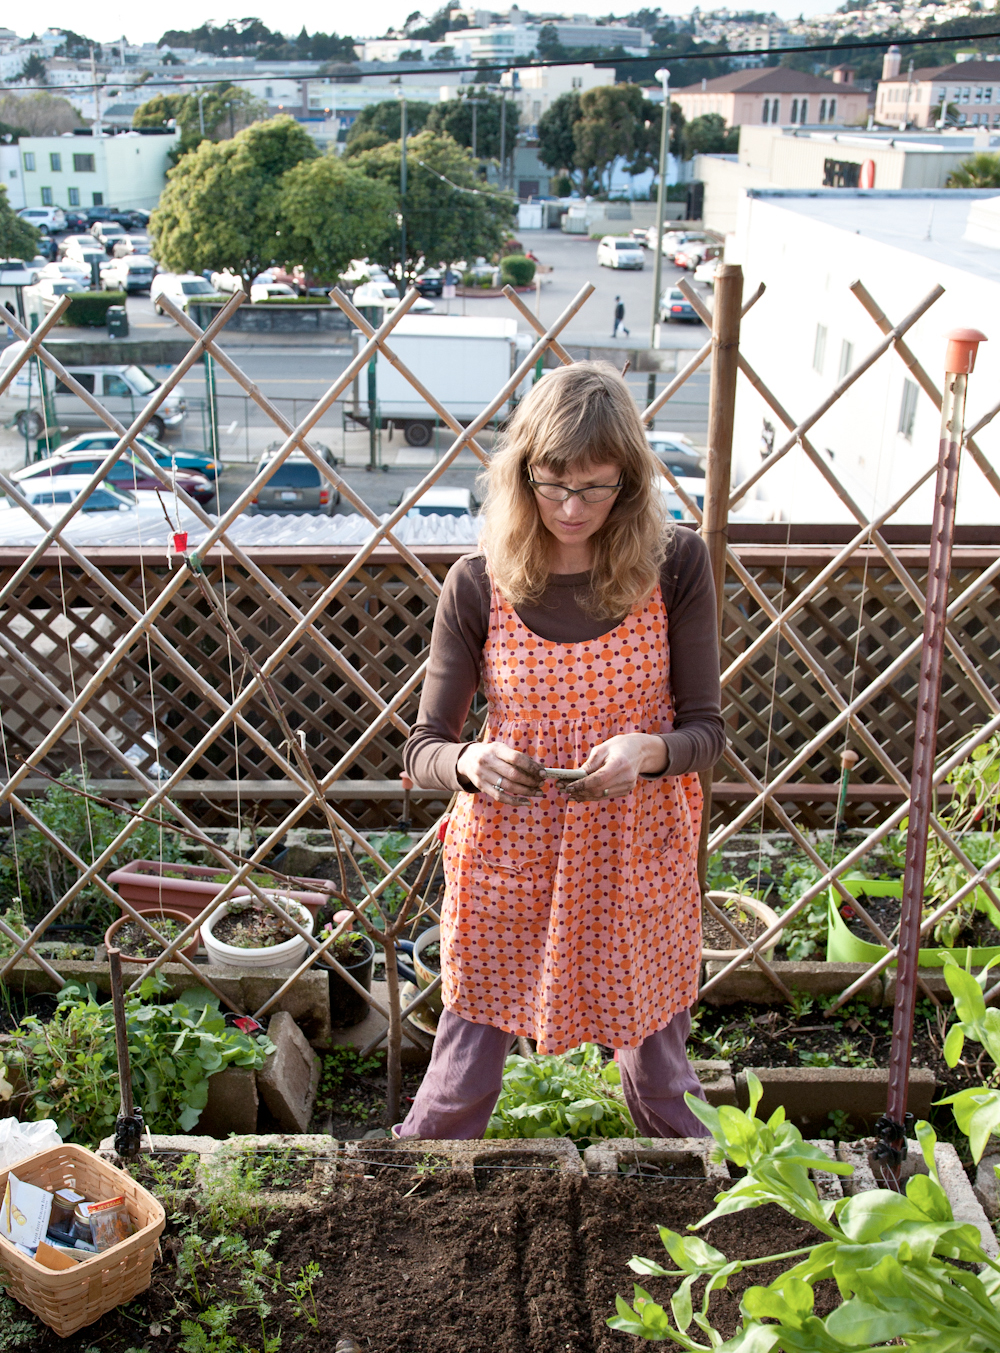 Heidi Kooy tends to produce and livestock in her Excelsior district backyard farm in San Francisco. Photo: Lori Eanes